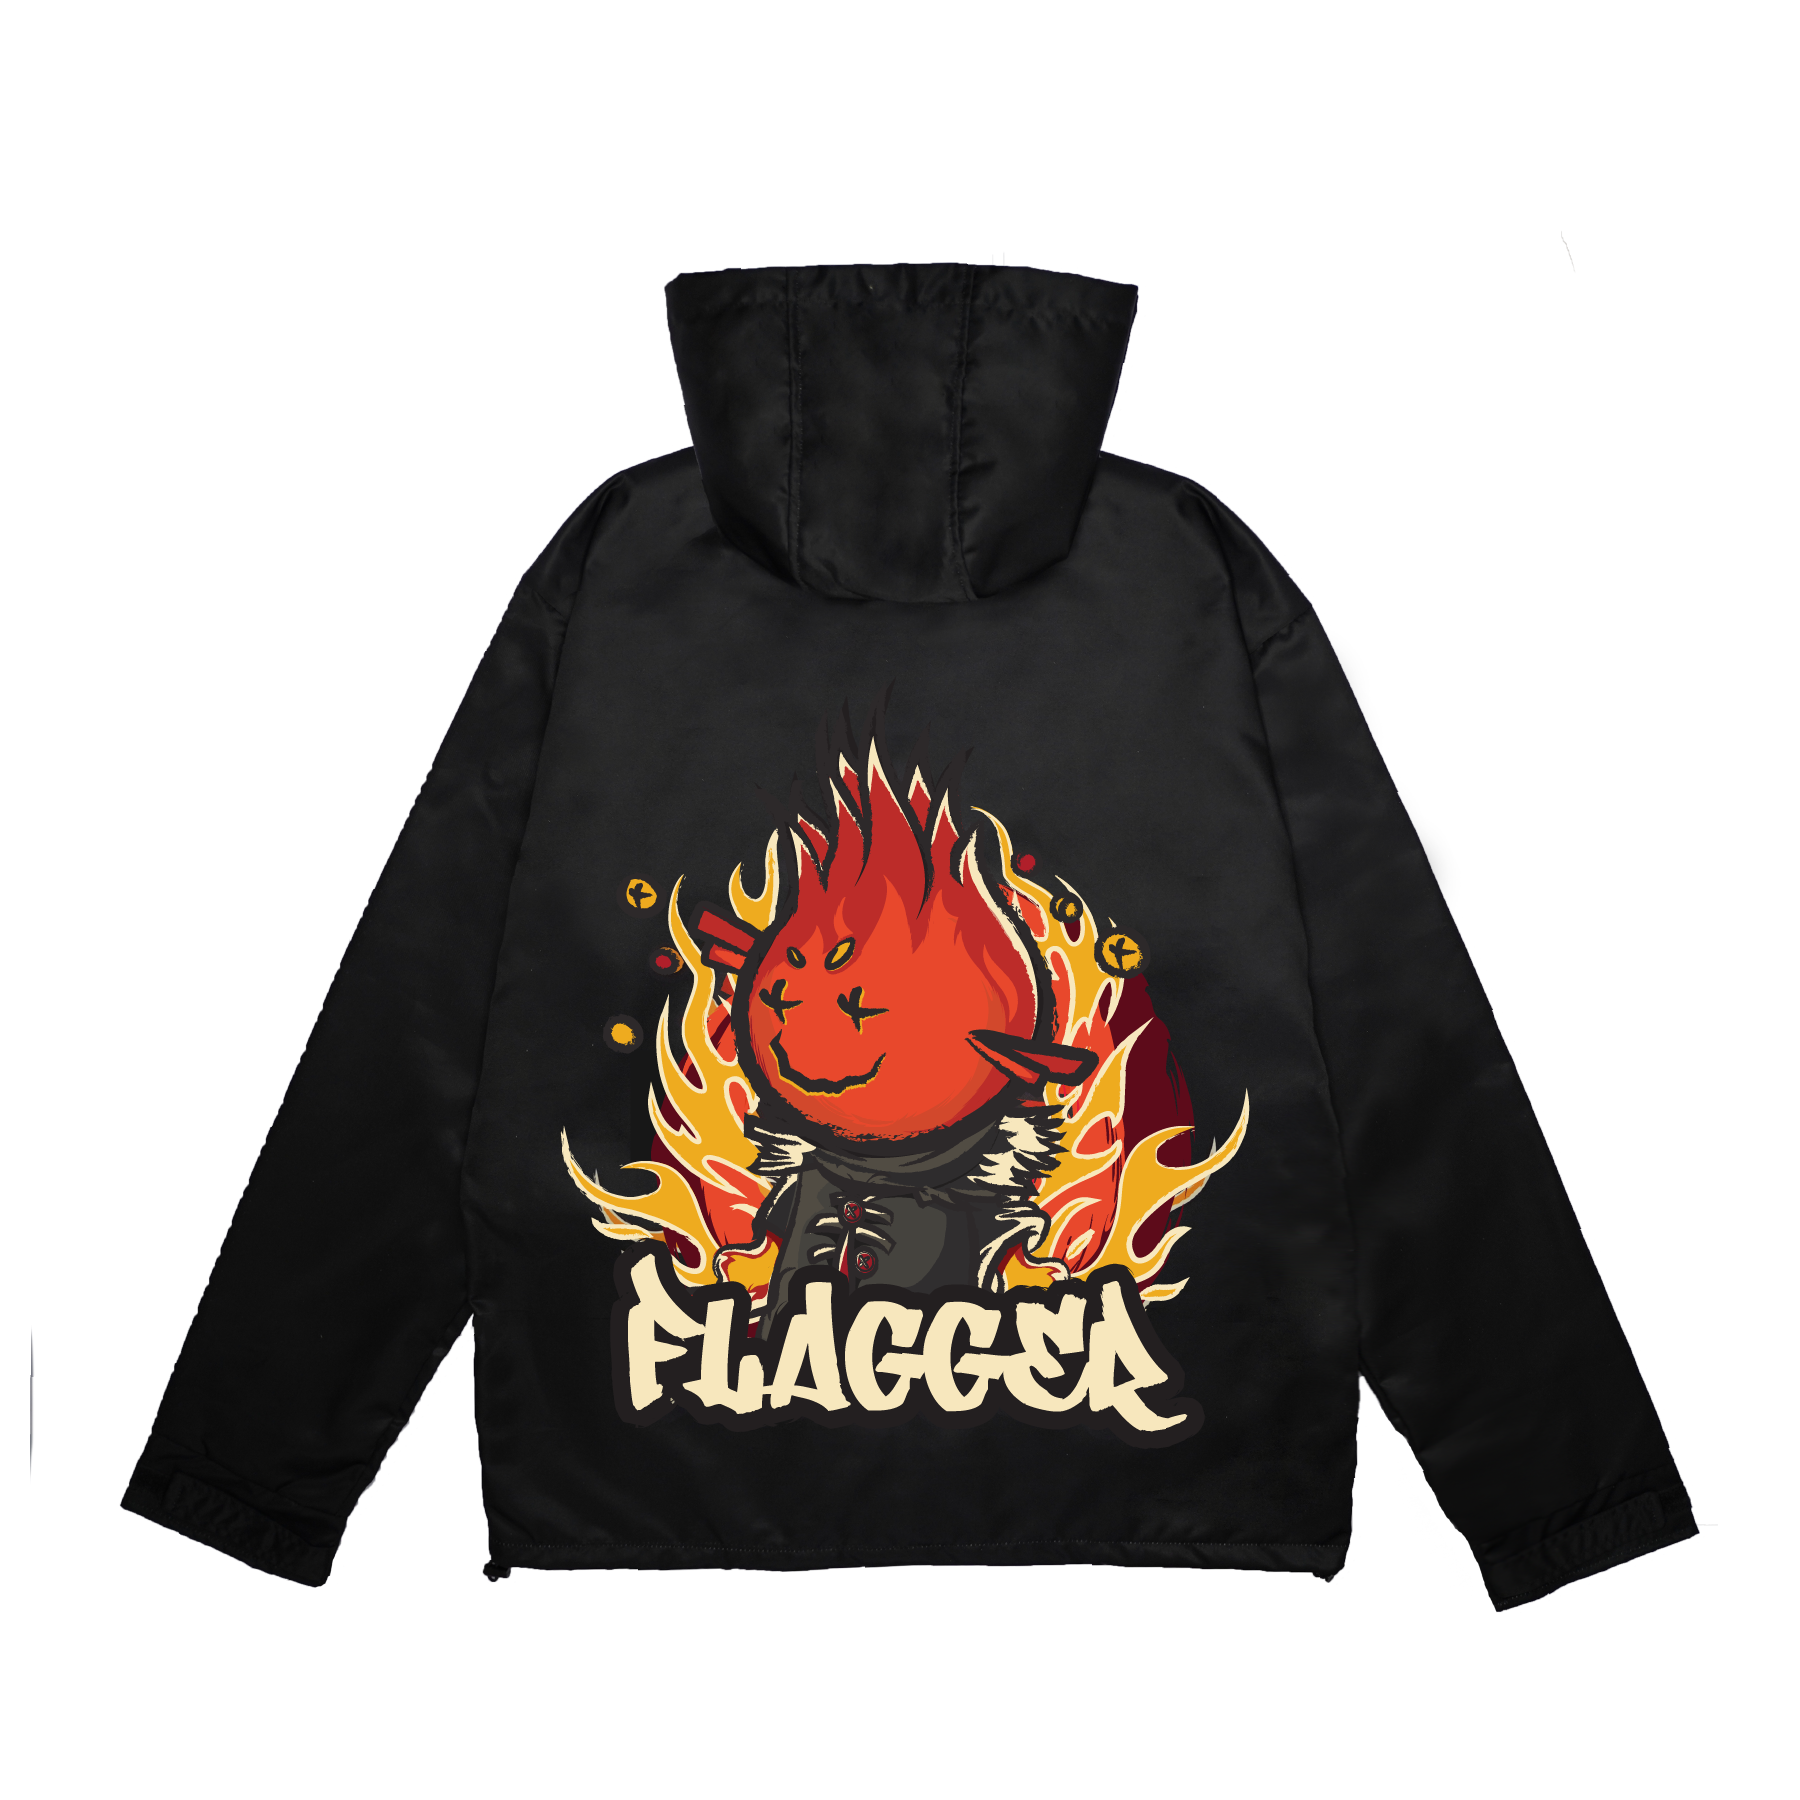 Flagger Jacket - The eternal flame